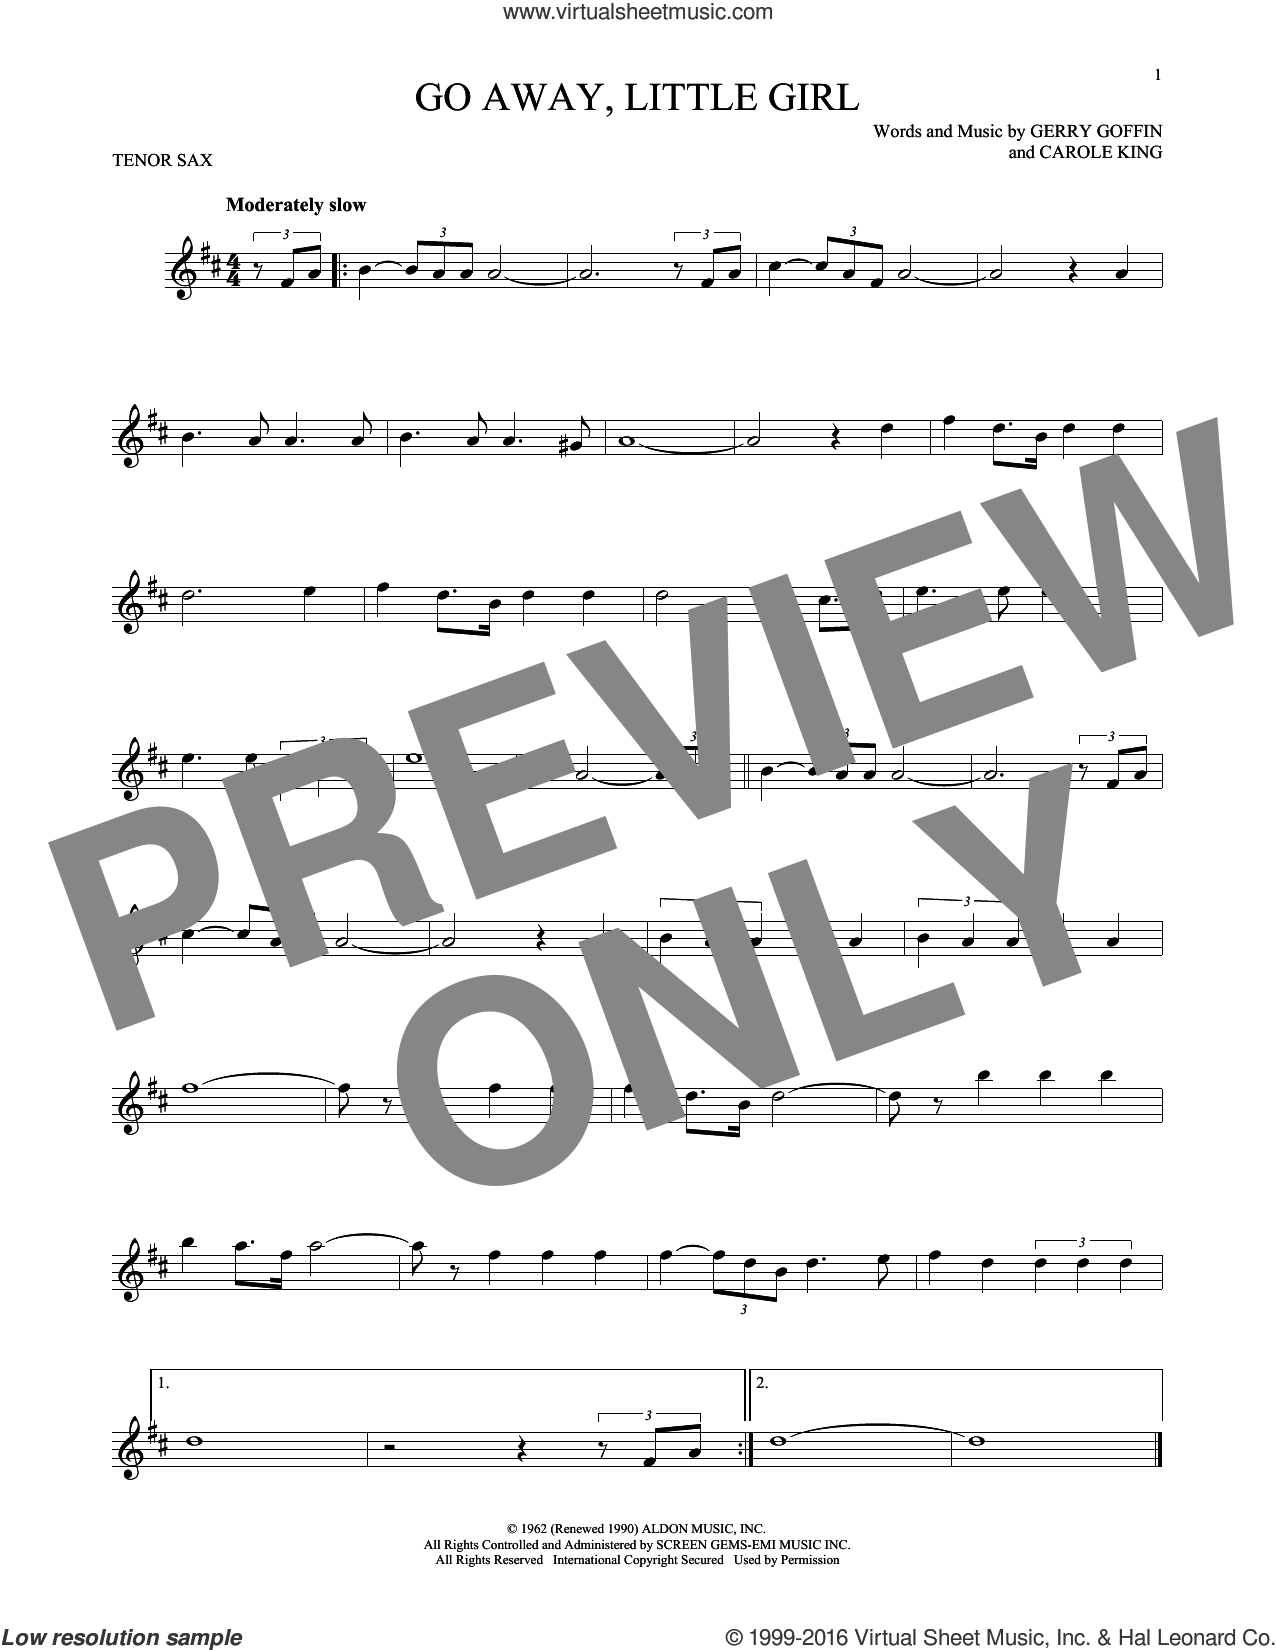 Go Away, Little Girl sheet music for tenor saxophone solo by Gerry Goffin, Donny Osmond and Carole King. Score Image Preview.